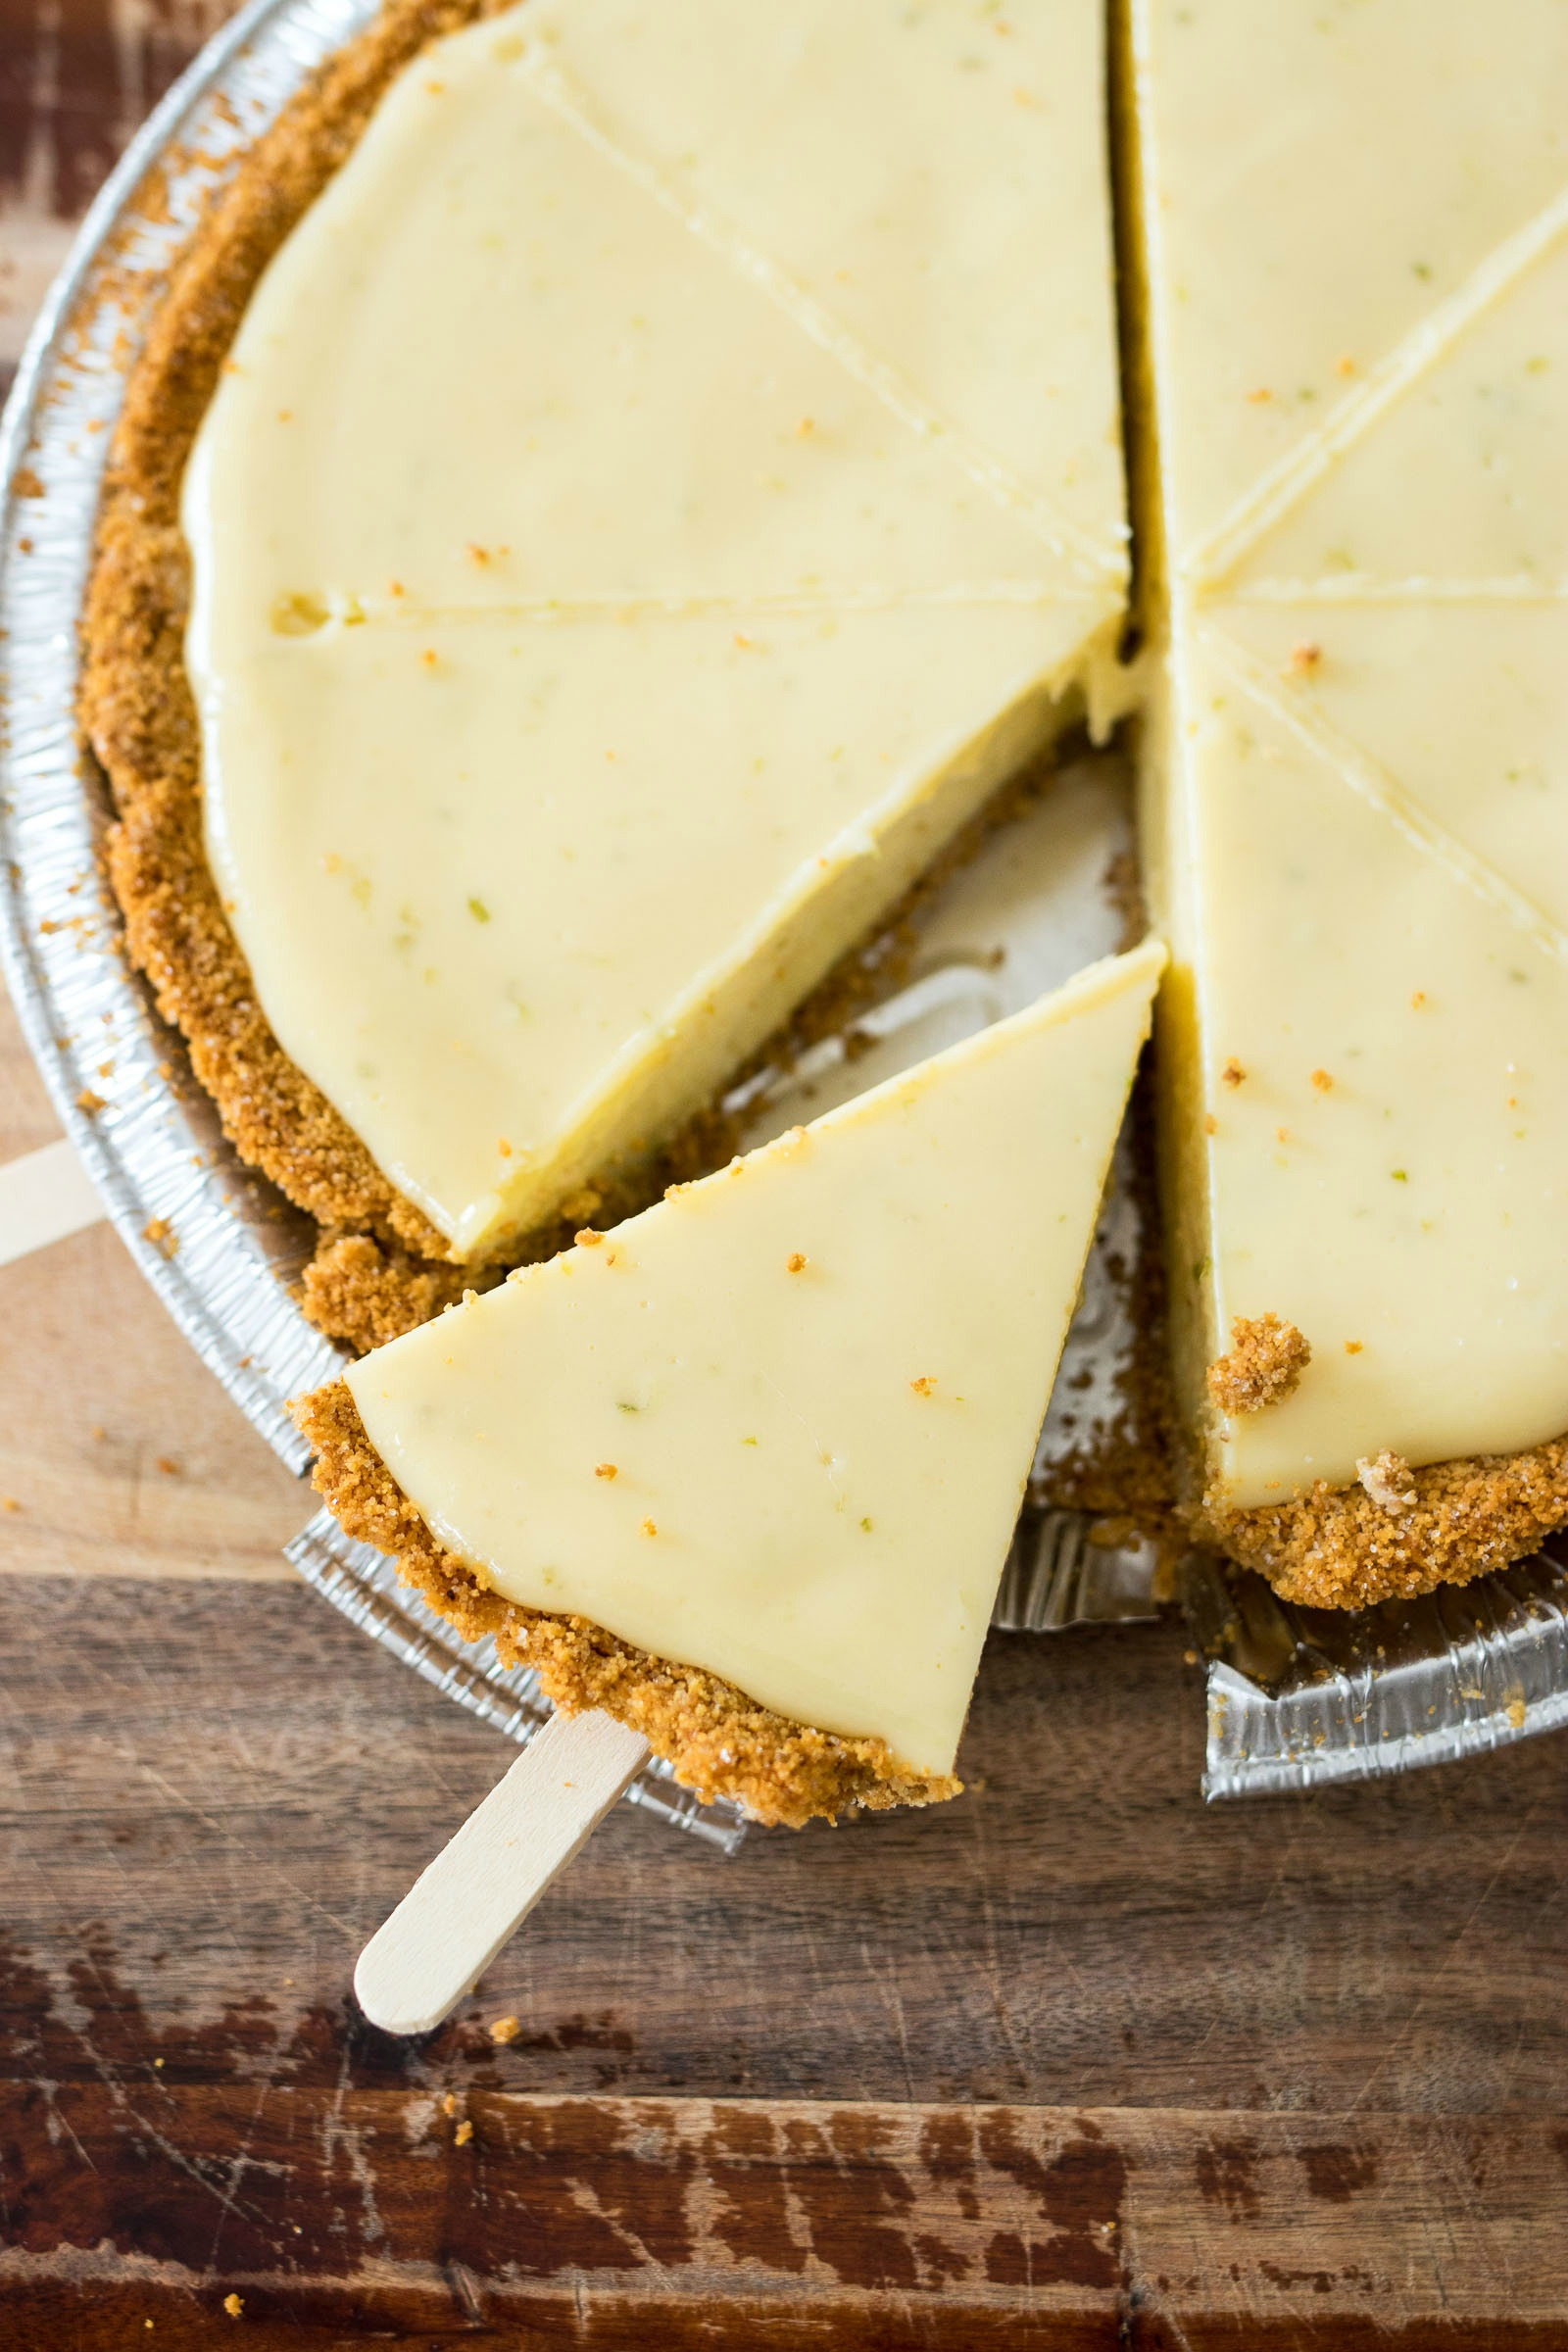 Slice of key lime pie with a popsicle stick stuck in the crust side